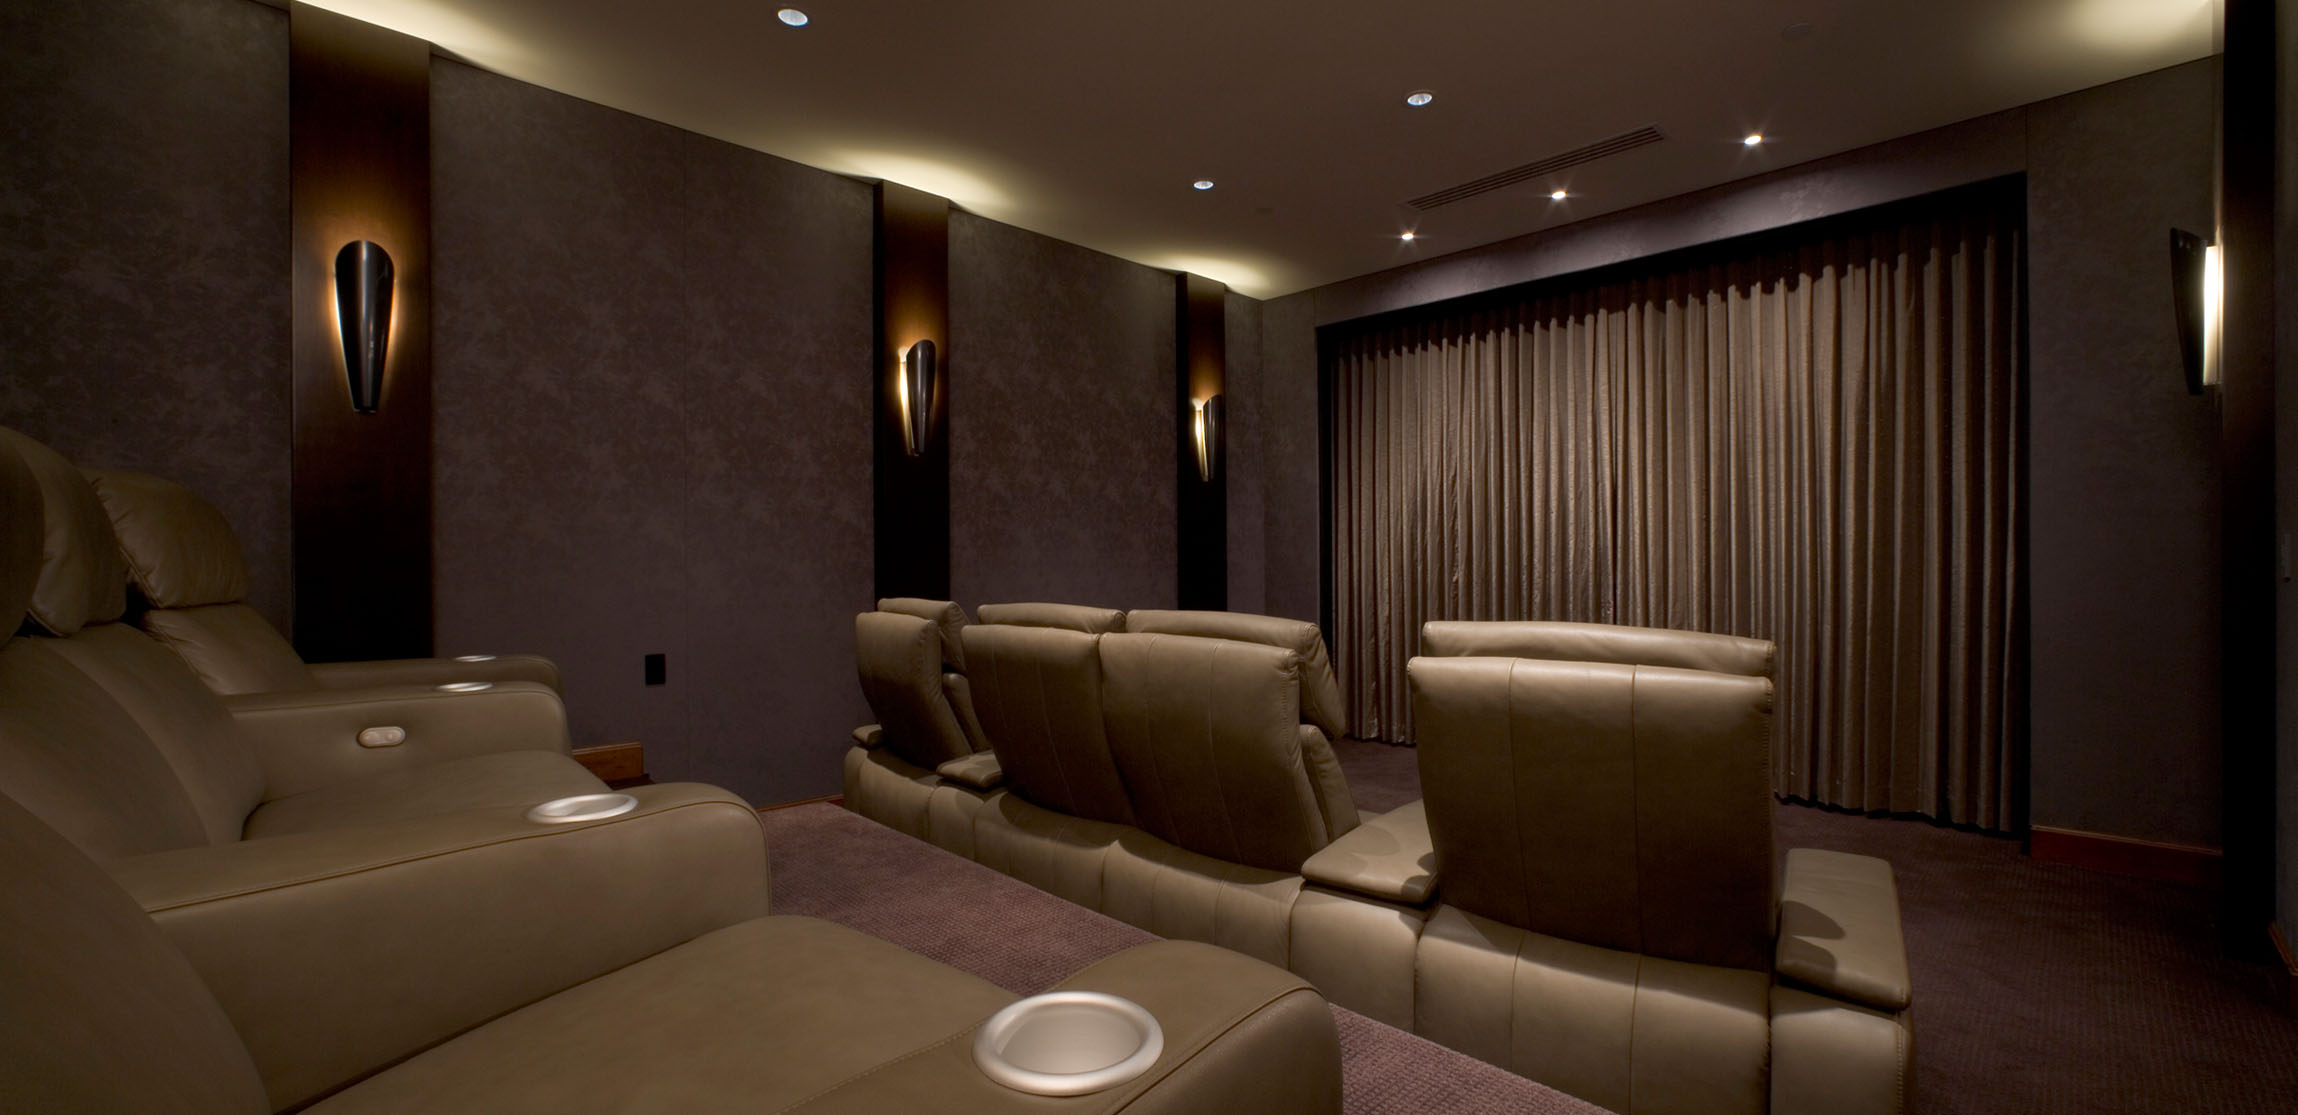 Complete Home Theatre Packages | Best Surveillance Camera Packages